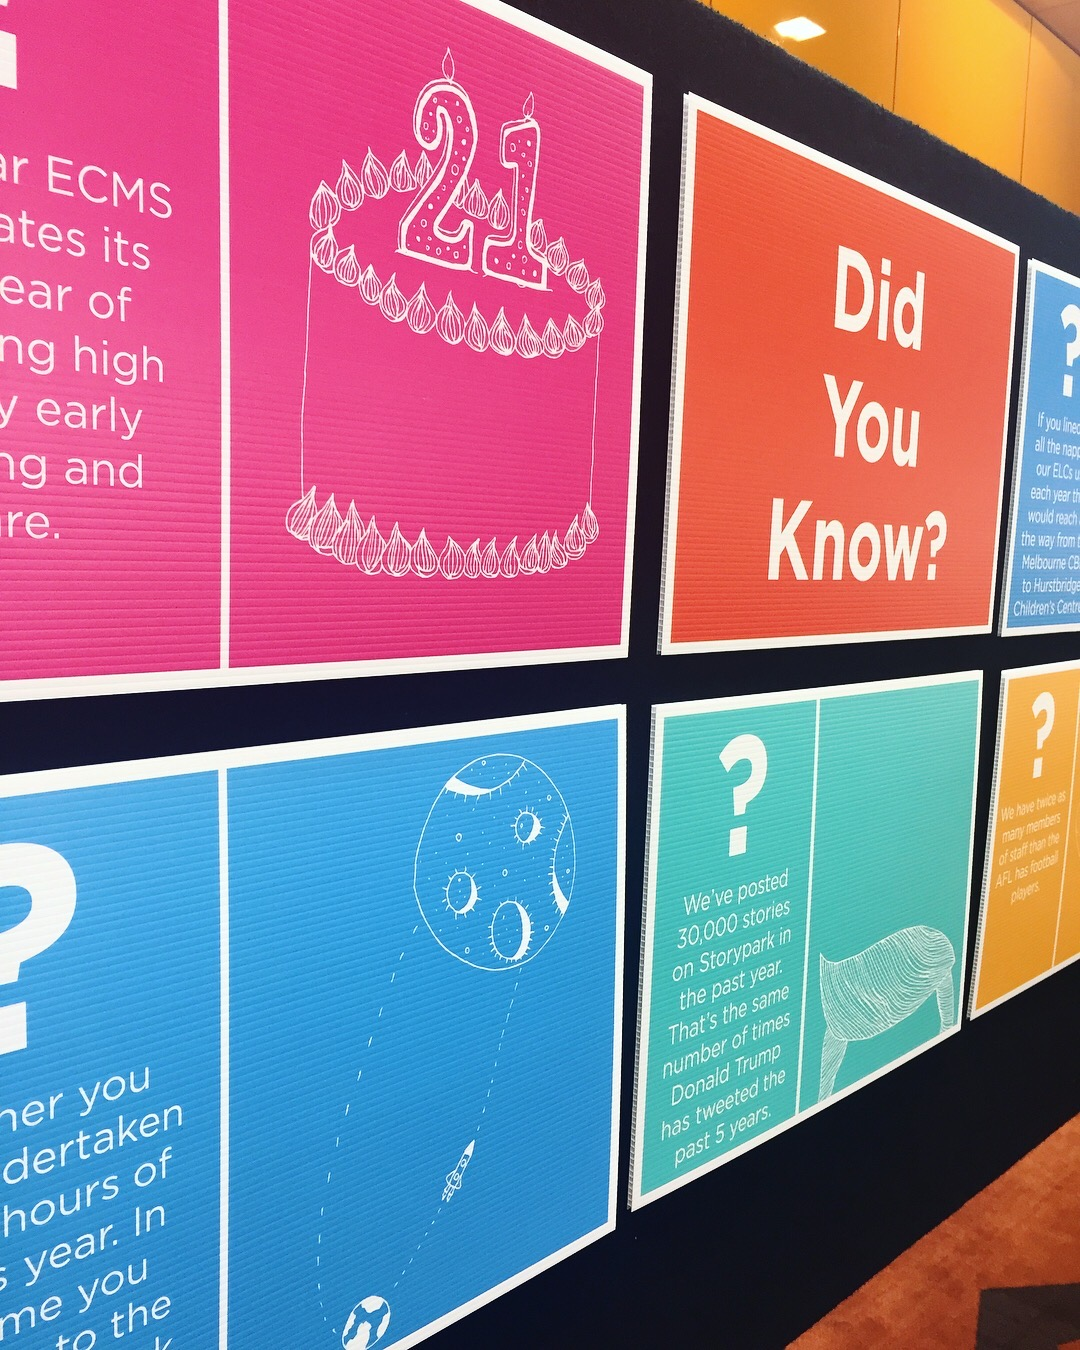 Statistic posters for ECMS' Beyond Tomorrow Conference